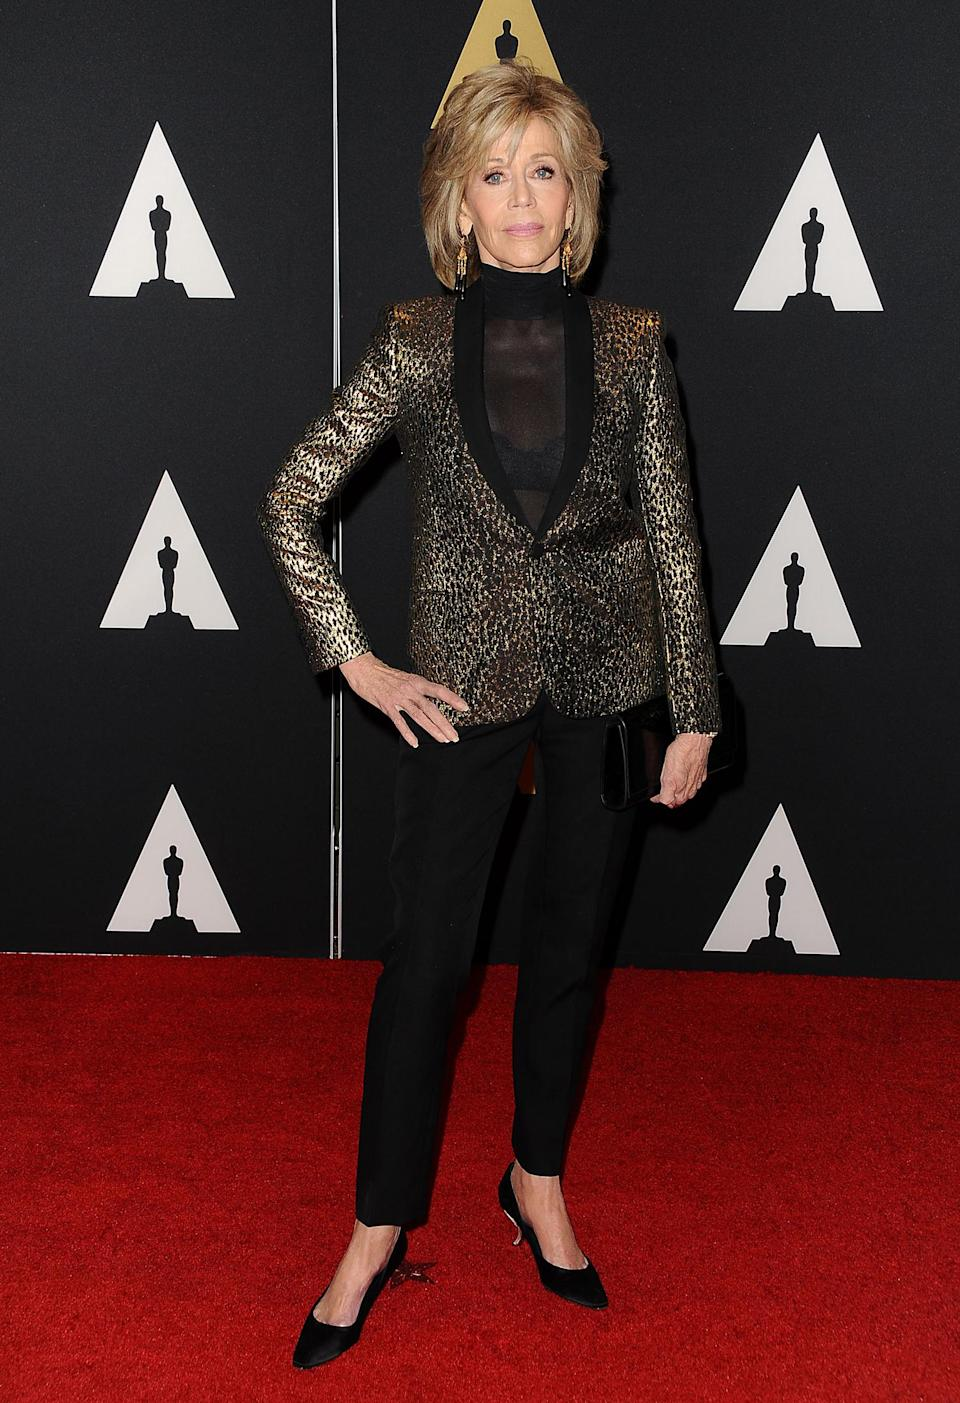 <p>Jane Fonda attends the 7th annual Governors Awards wearing a shimmery gold and black suit on November 14, 2015 in Hollywood, California. (Photo: Getty Images) </p>